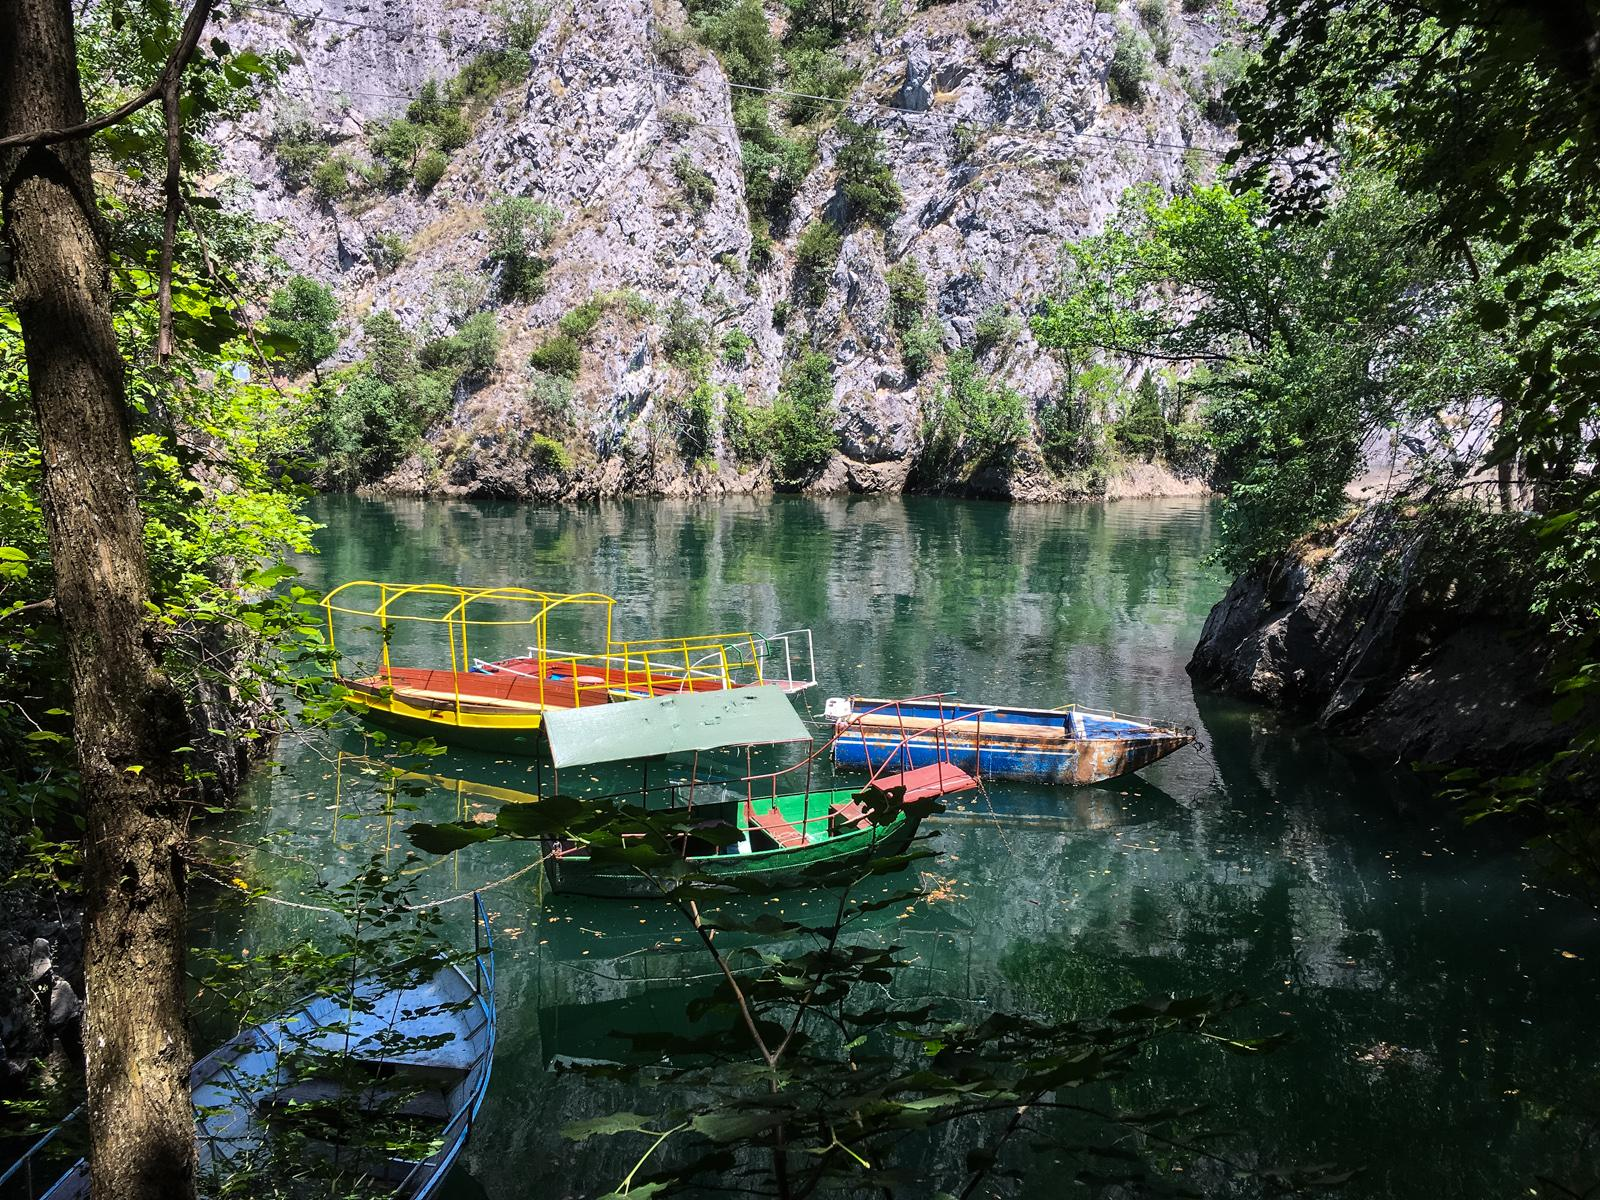 Boats on Lake Matka